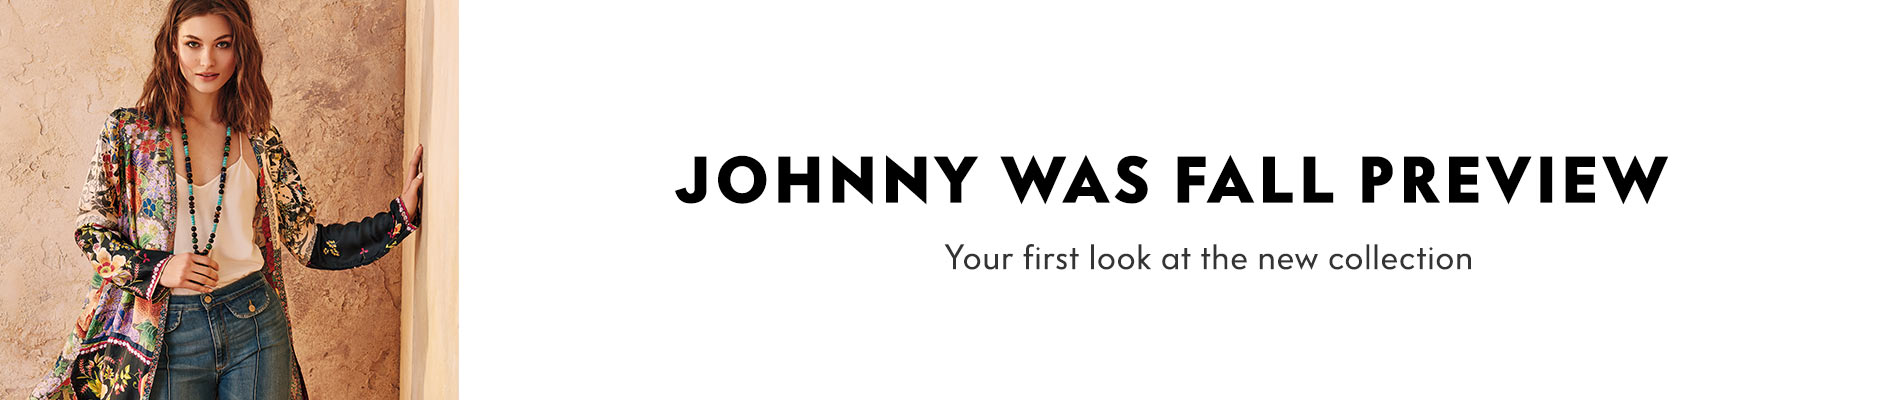 Johnny Was Fall Preview - Your first look at the new collection